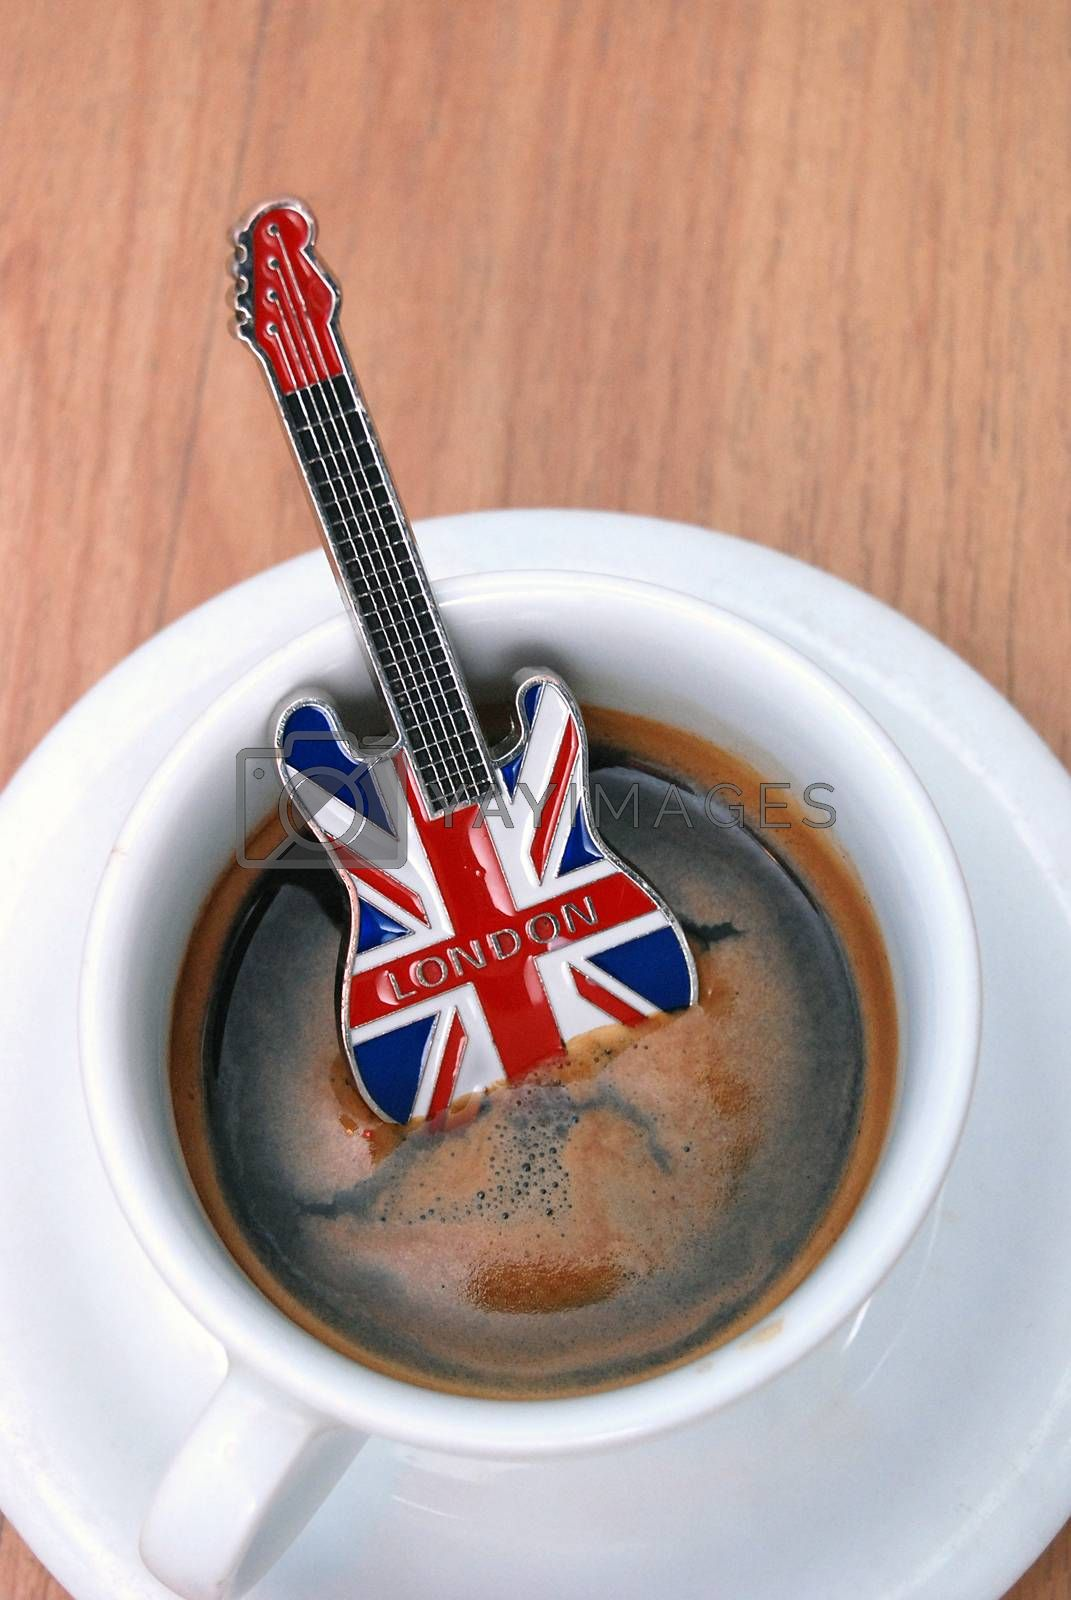 Royalty free image of guitar souvenir from london in espresso cup by nehru